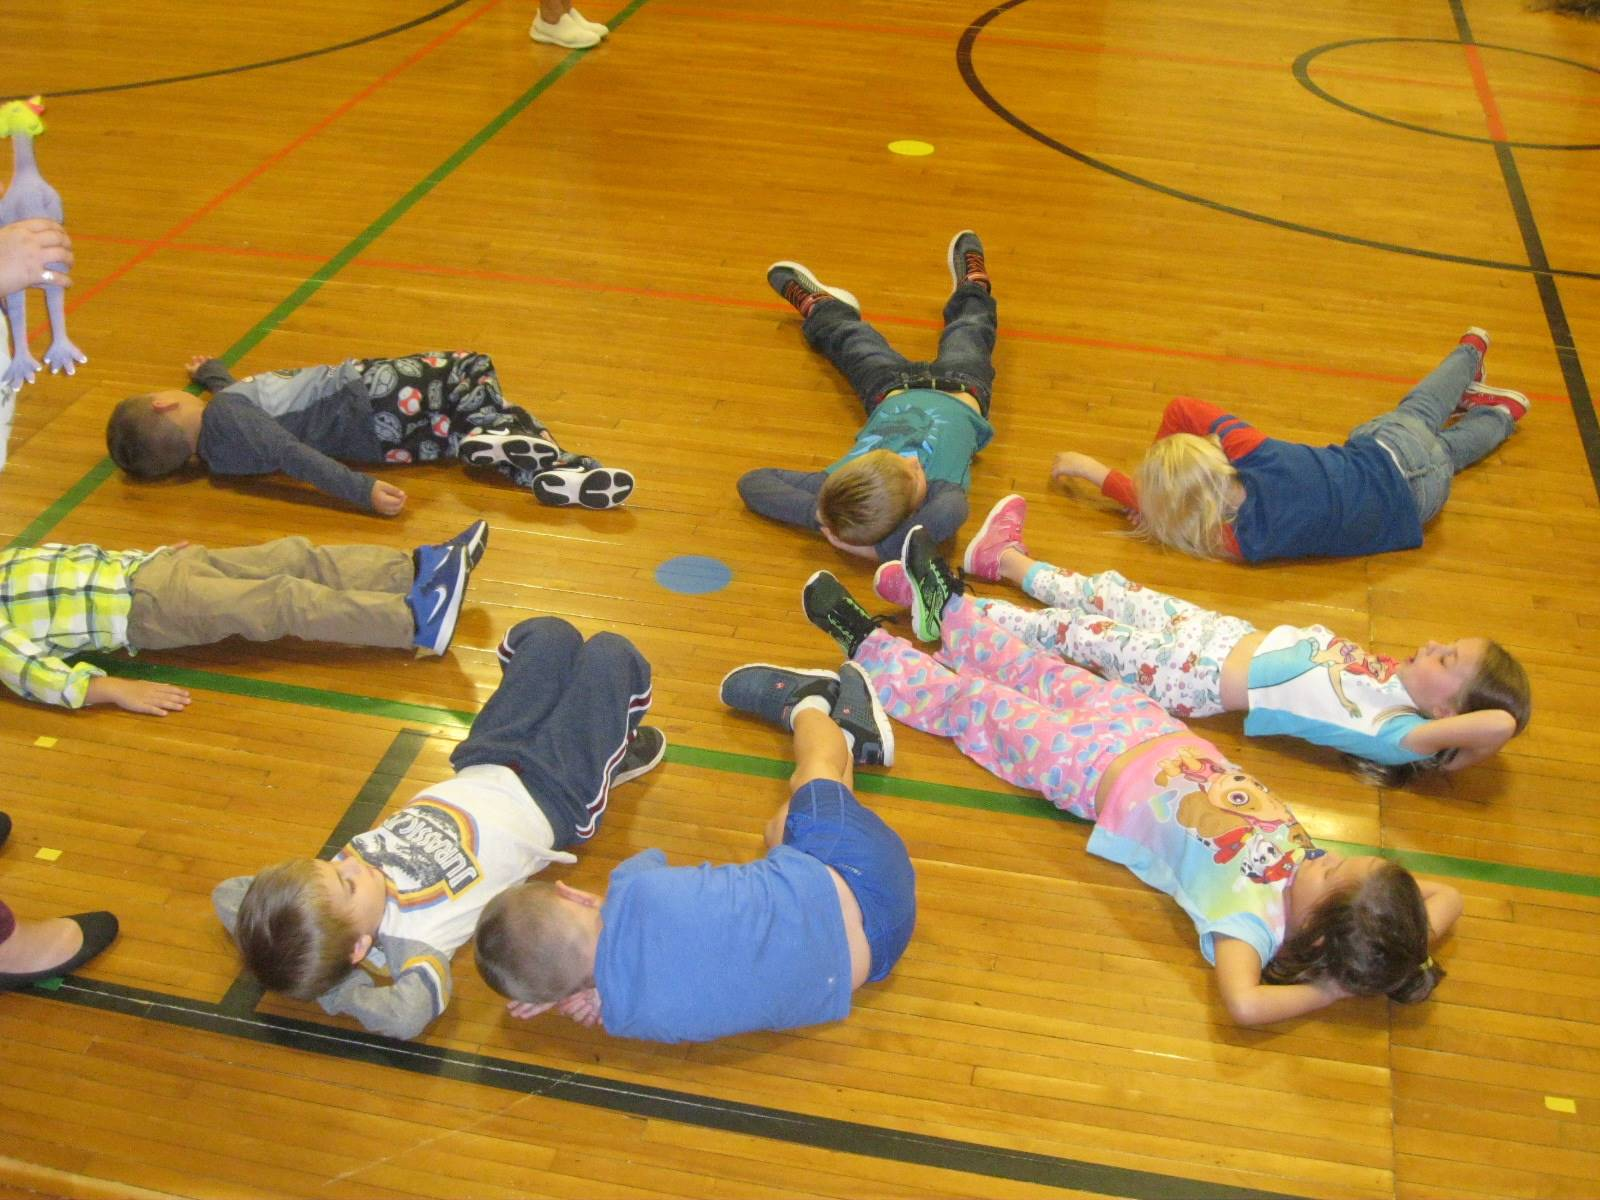 Several students relax and get ready to go.